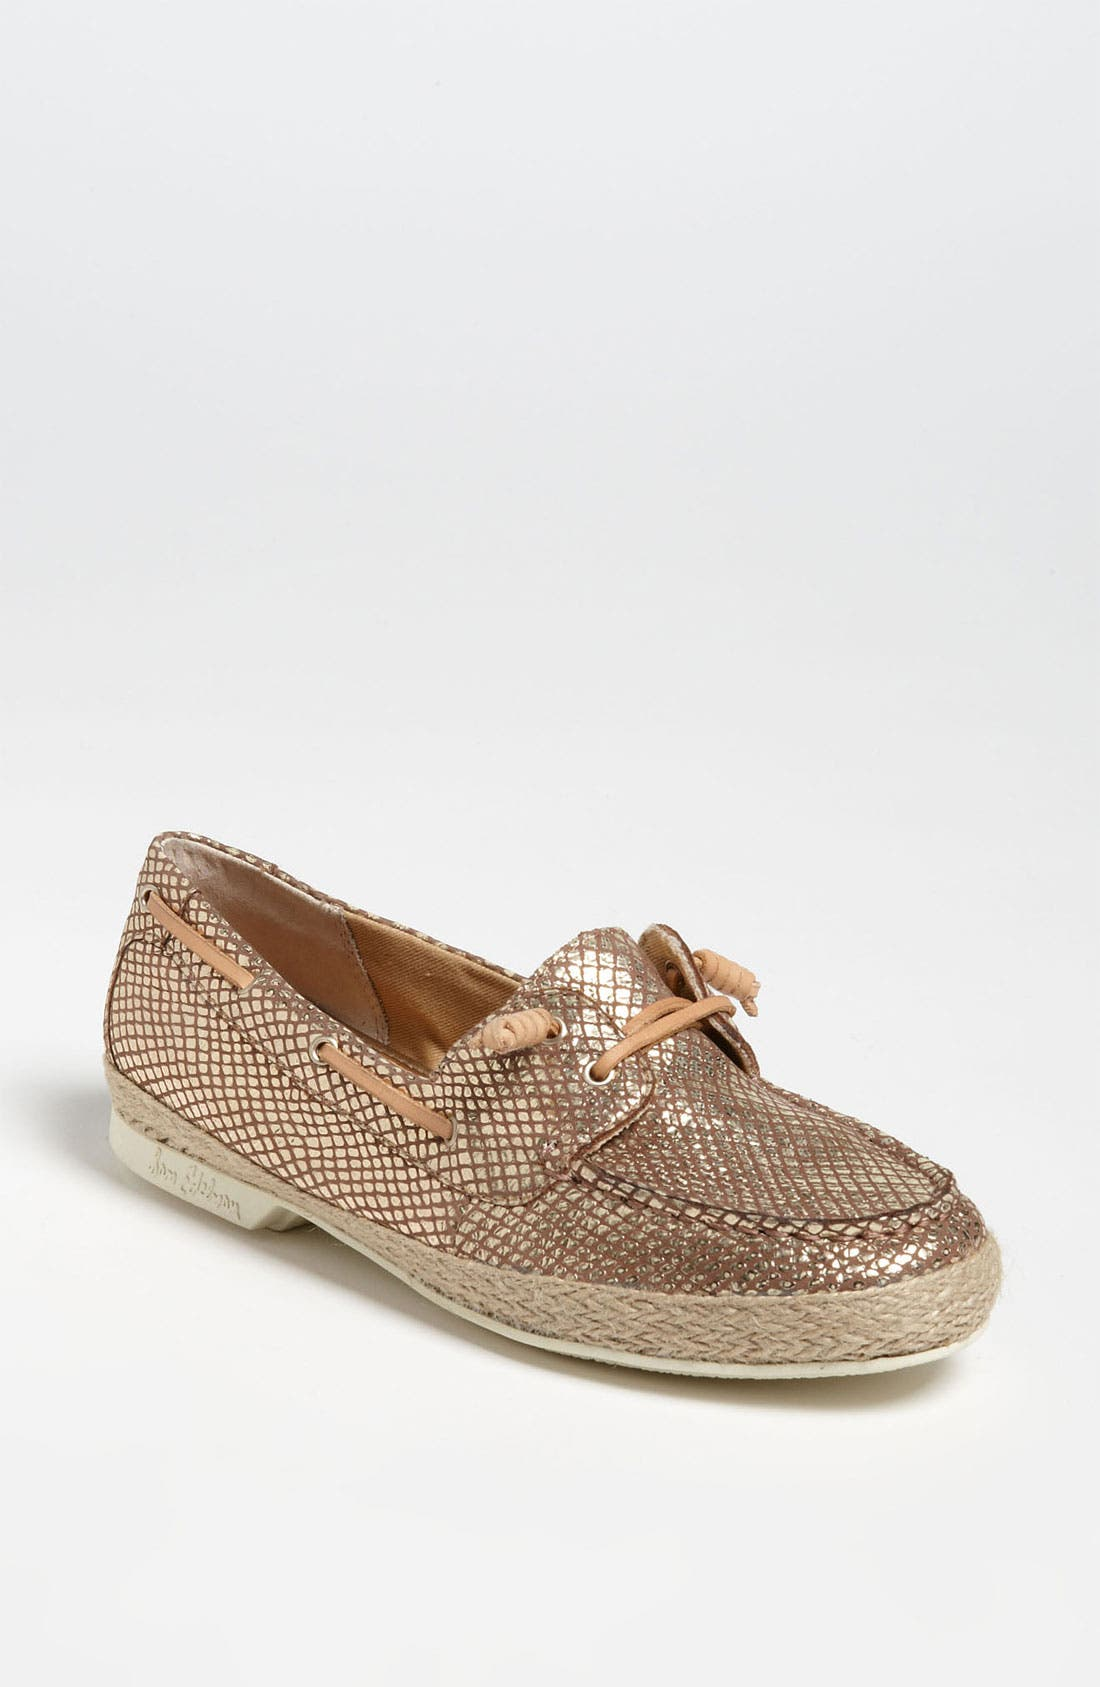 Alternate Image 1 Selected - Sam Edelman 'Sebastian' Boat Shoe